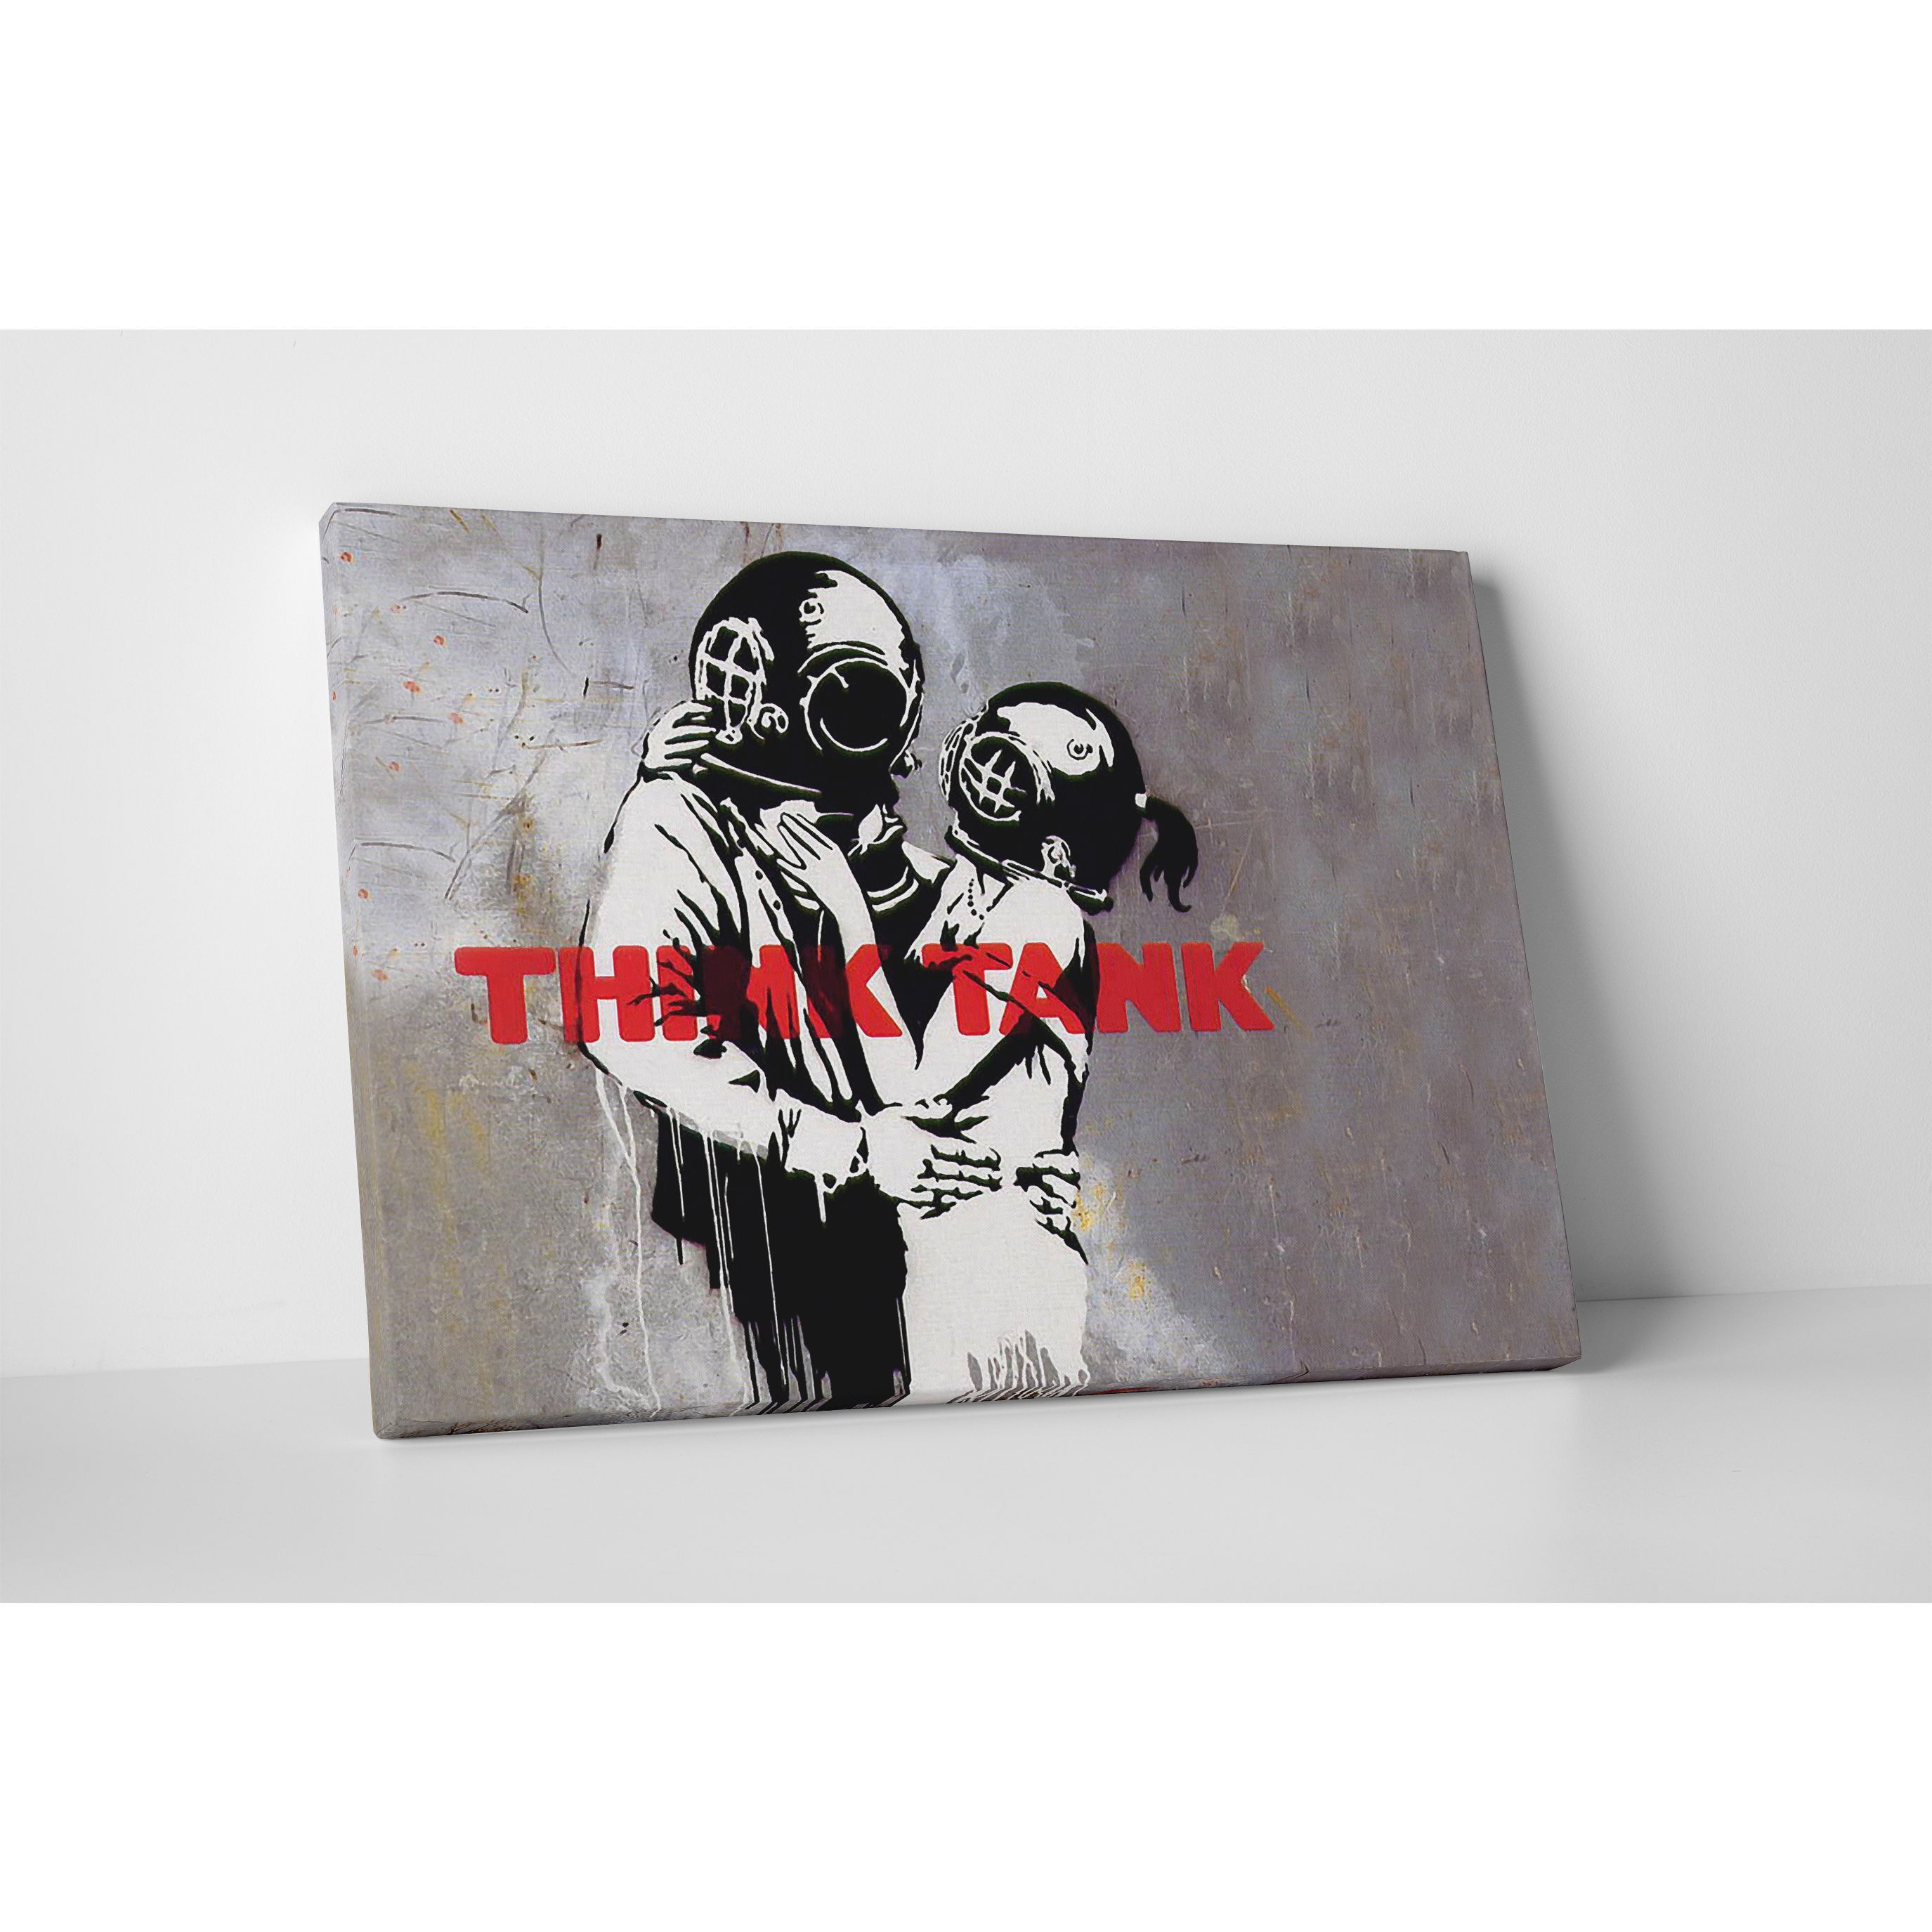 Banksy 'Think Tank' Gallery Wrapped Canvas Wall Art